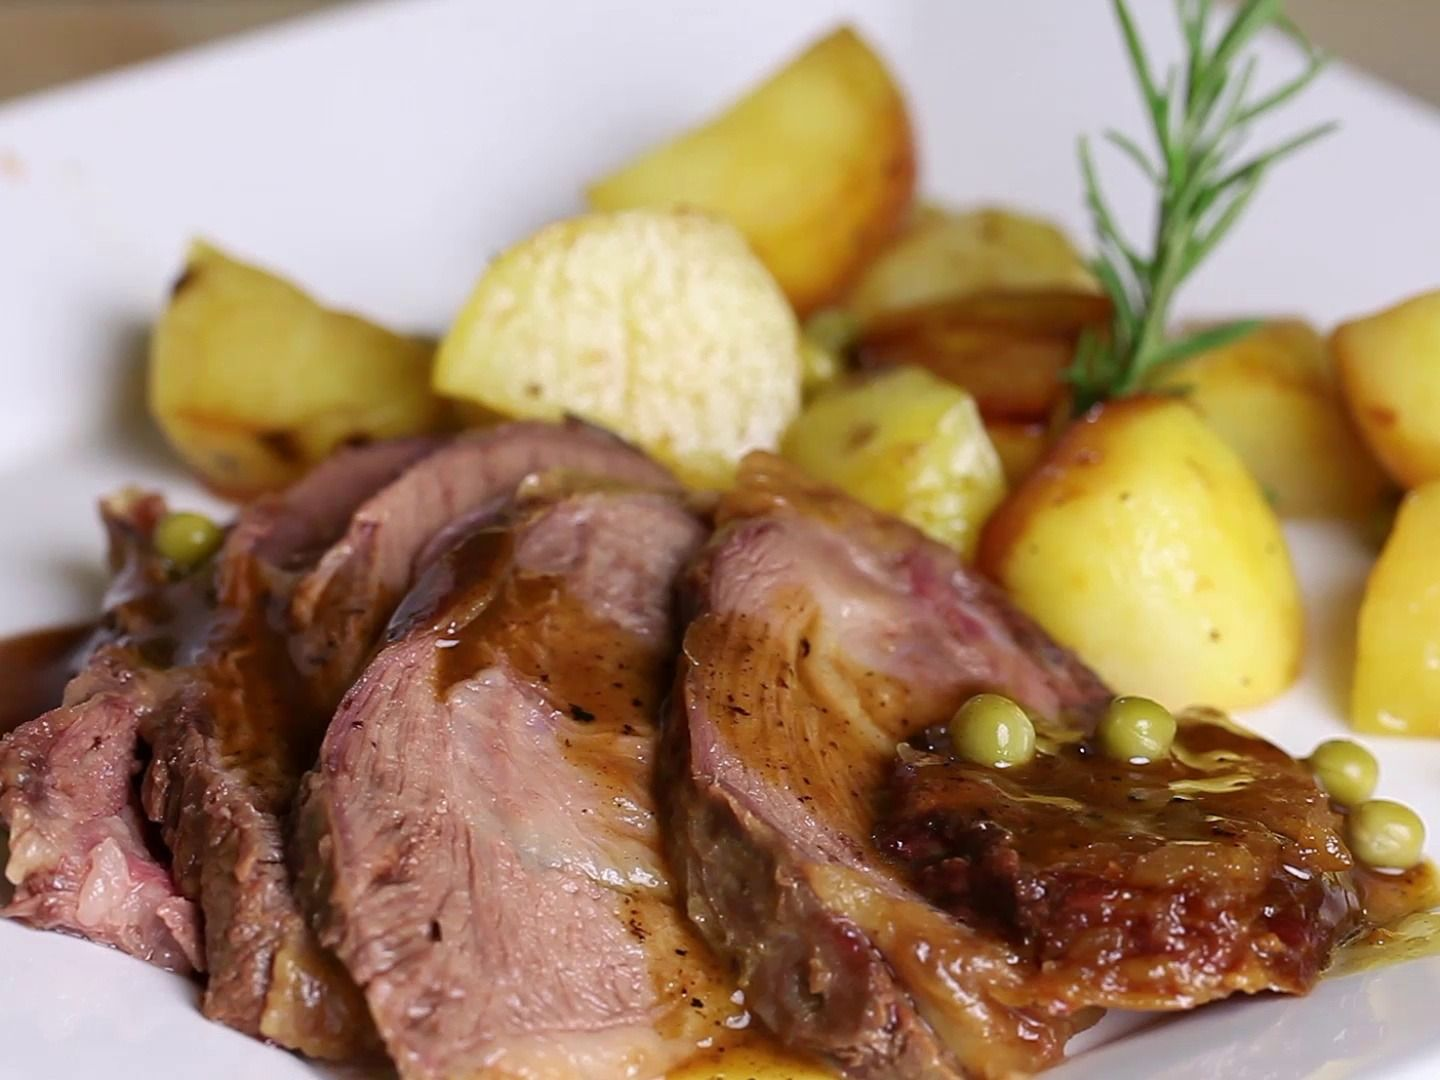 recipe: what temperature to slow cook a roast in the oven [39]